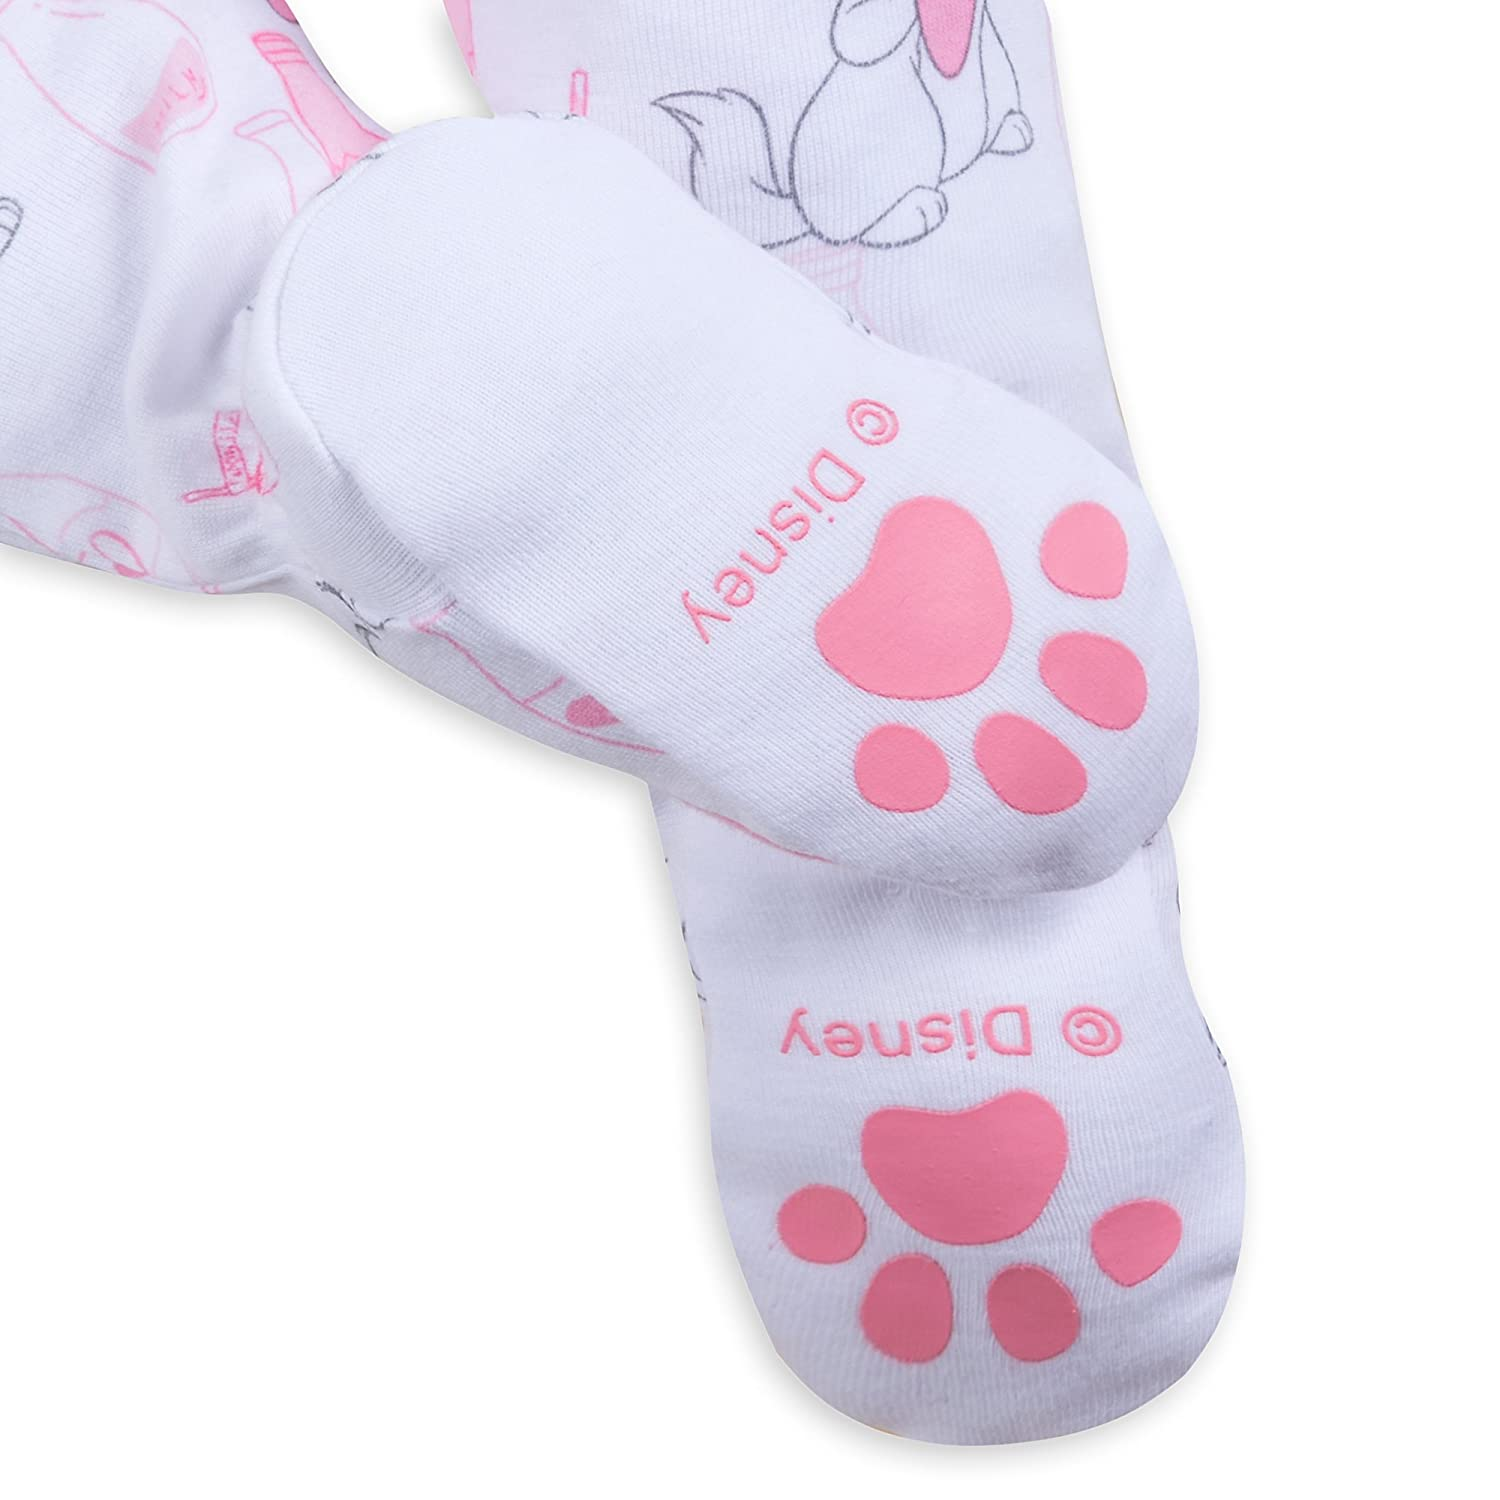 62911f65b8 Amazon.com  Disney Marie Footed Stretchie Sleeper for Baby - The Aristocats  Size 0-3 MO Multi  Baby